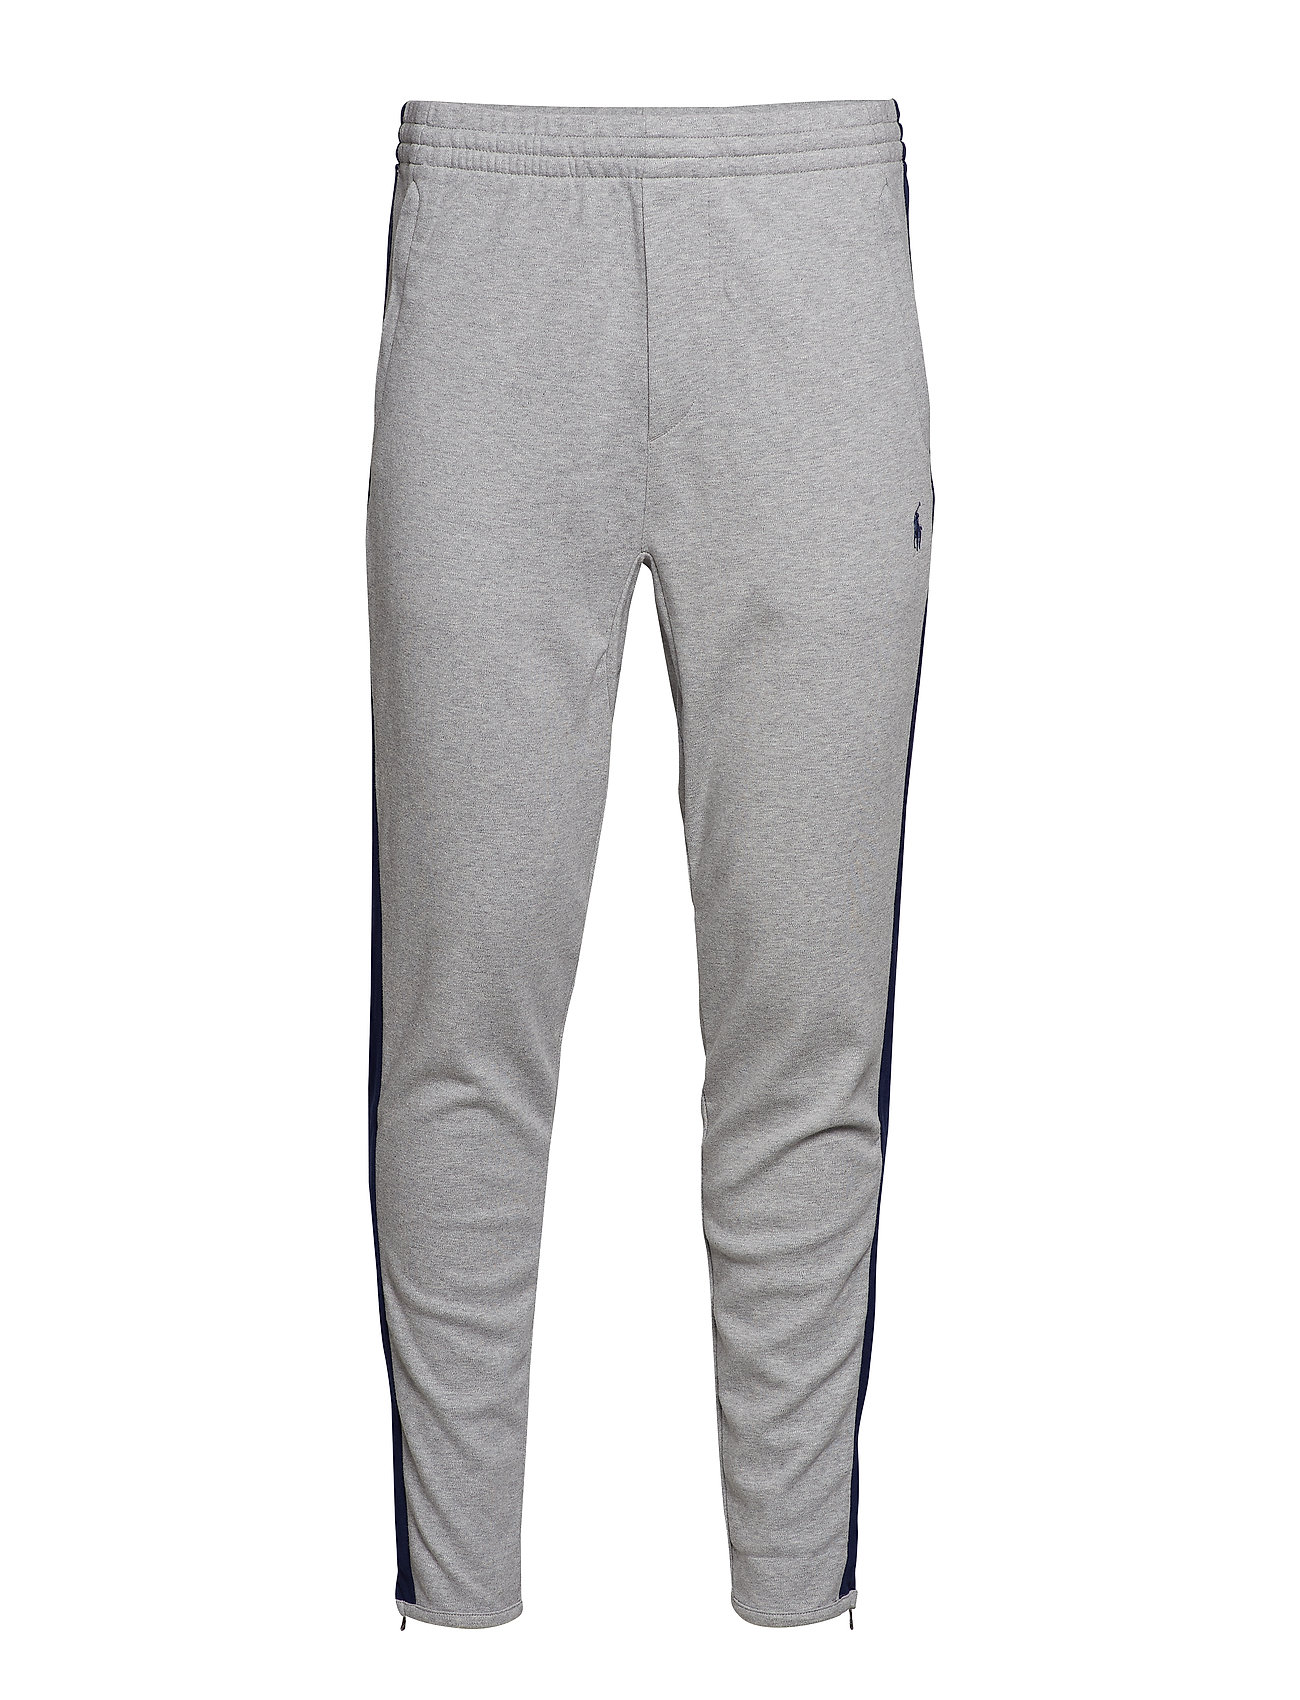 Polo Ralph Lauren PANTM5-ATHLETIC-PANT - ANDOVER HEATHER